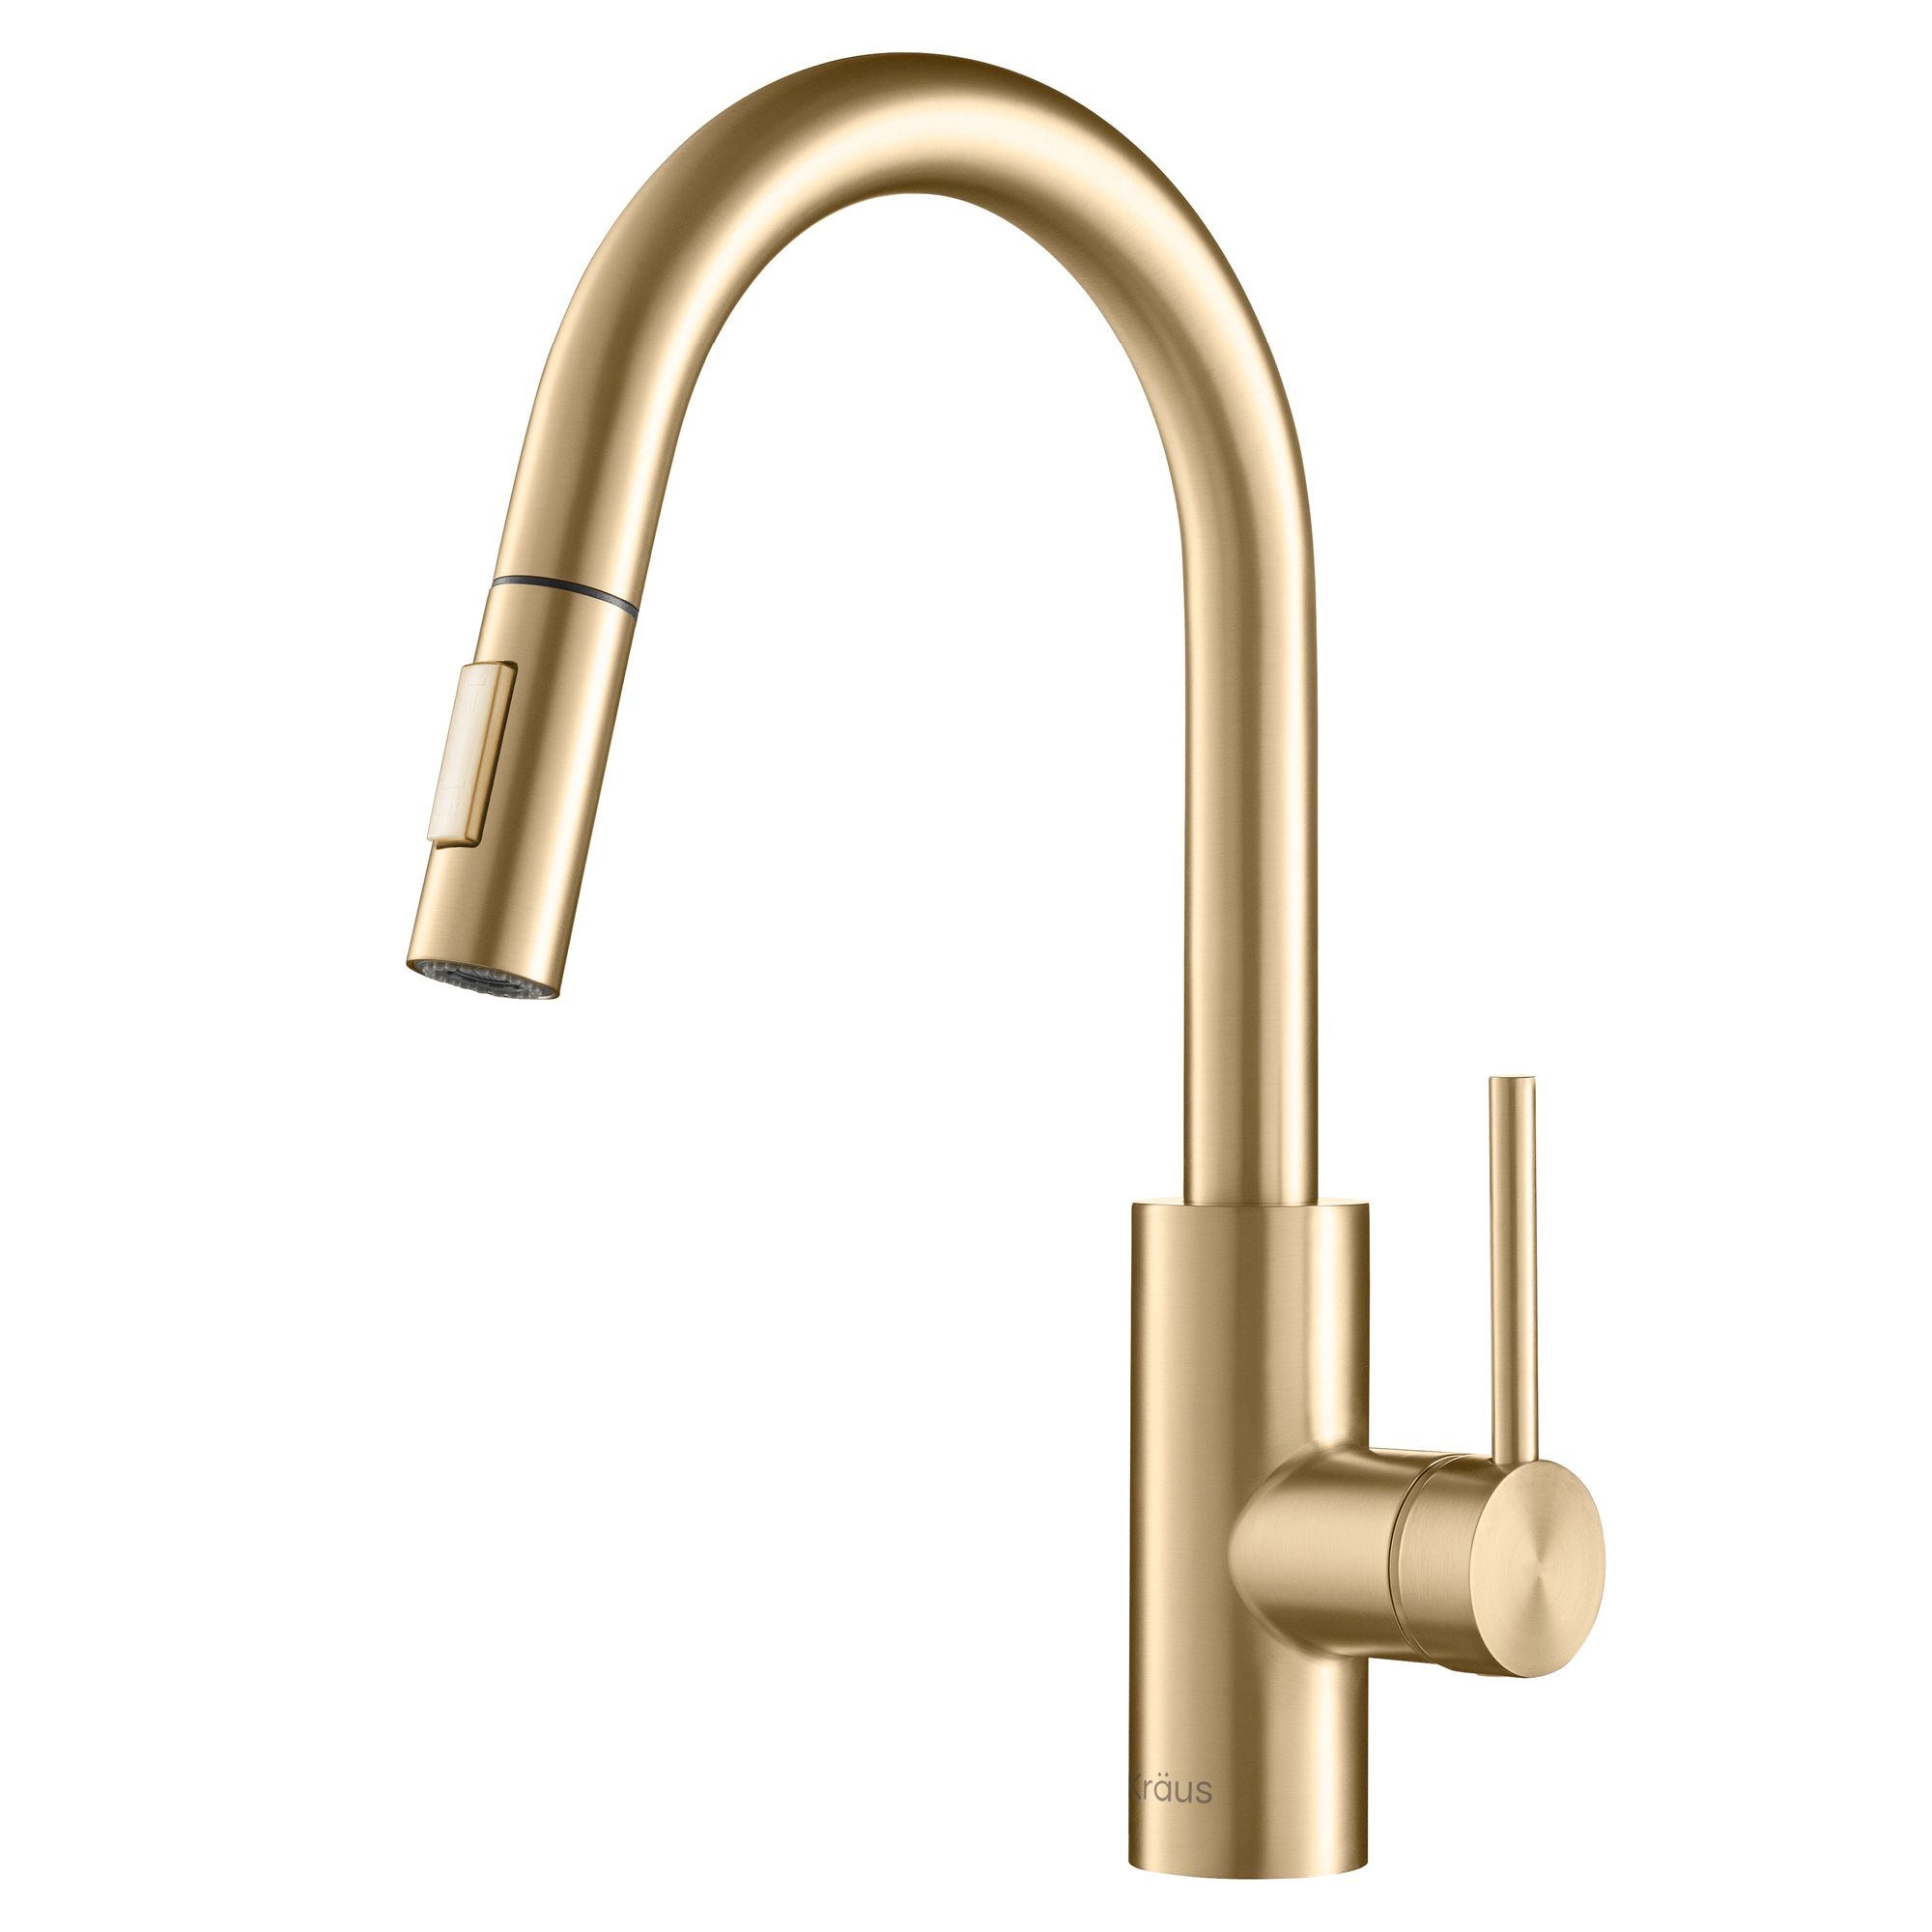 Kraus Oletto Single Handle Pull Down Kitchen Faucet In Gold Finish Walmart Com Kitchen Faucet Gold Kitchen Faucet Brass Kitchen Faucet